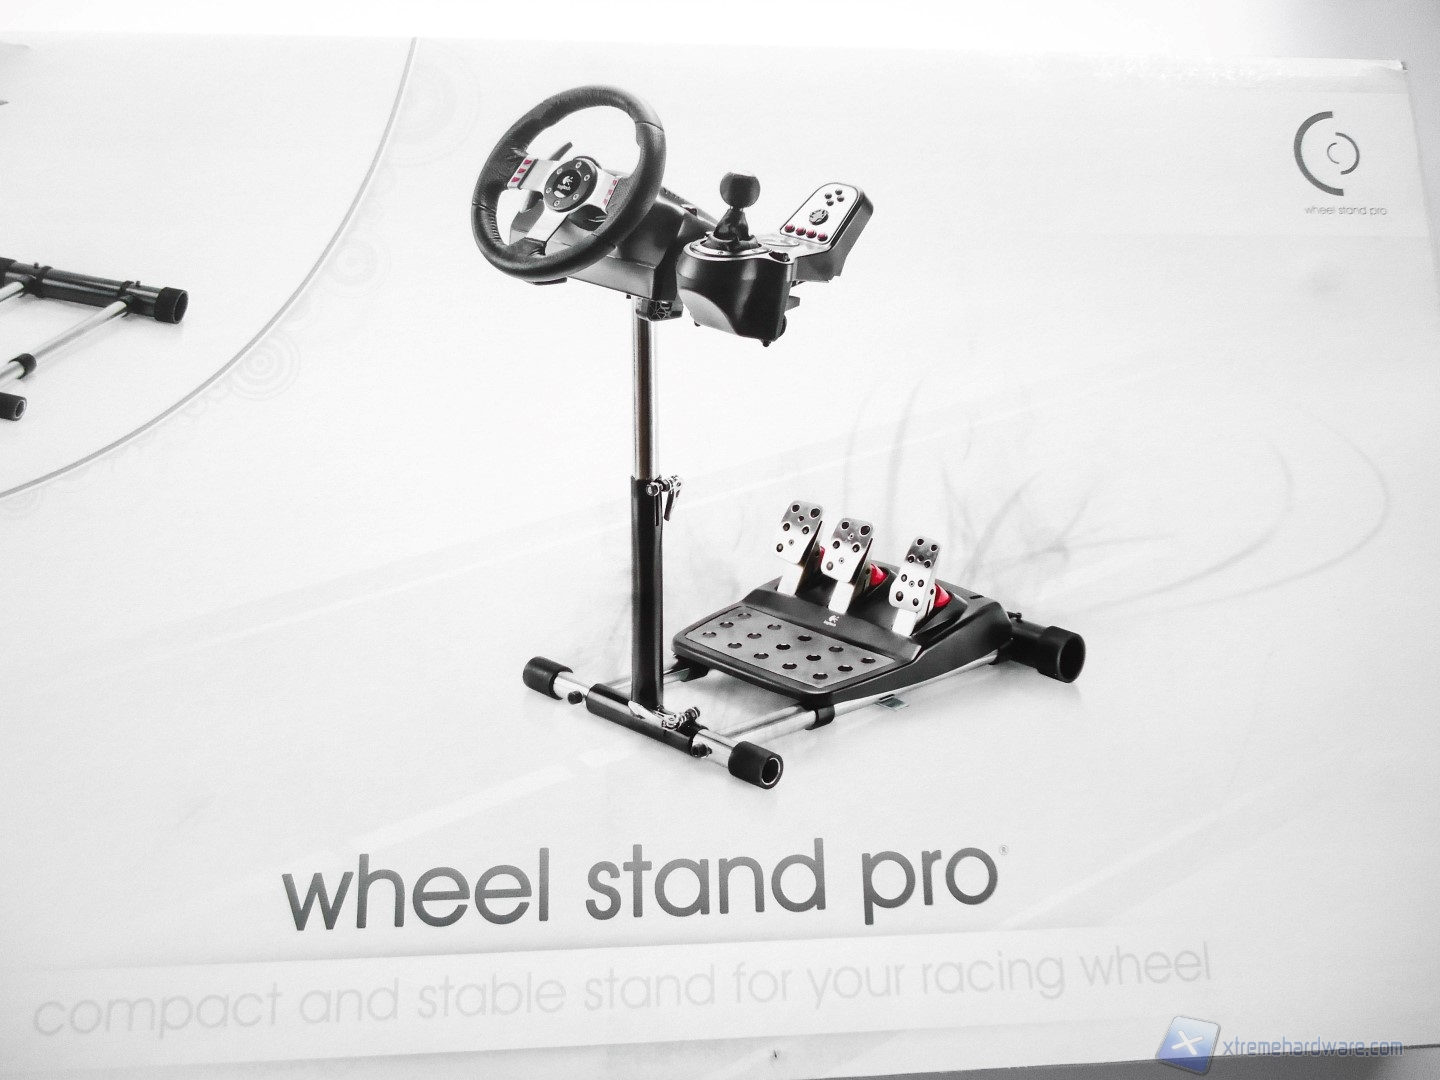 wheel stand pro v2 stability at the right price. Black Bedroom Furniture Sets. Home Design Ideas